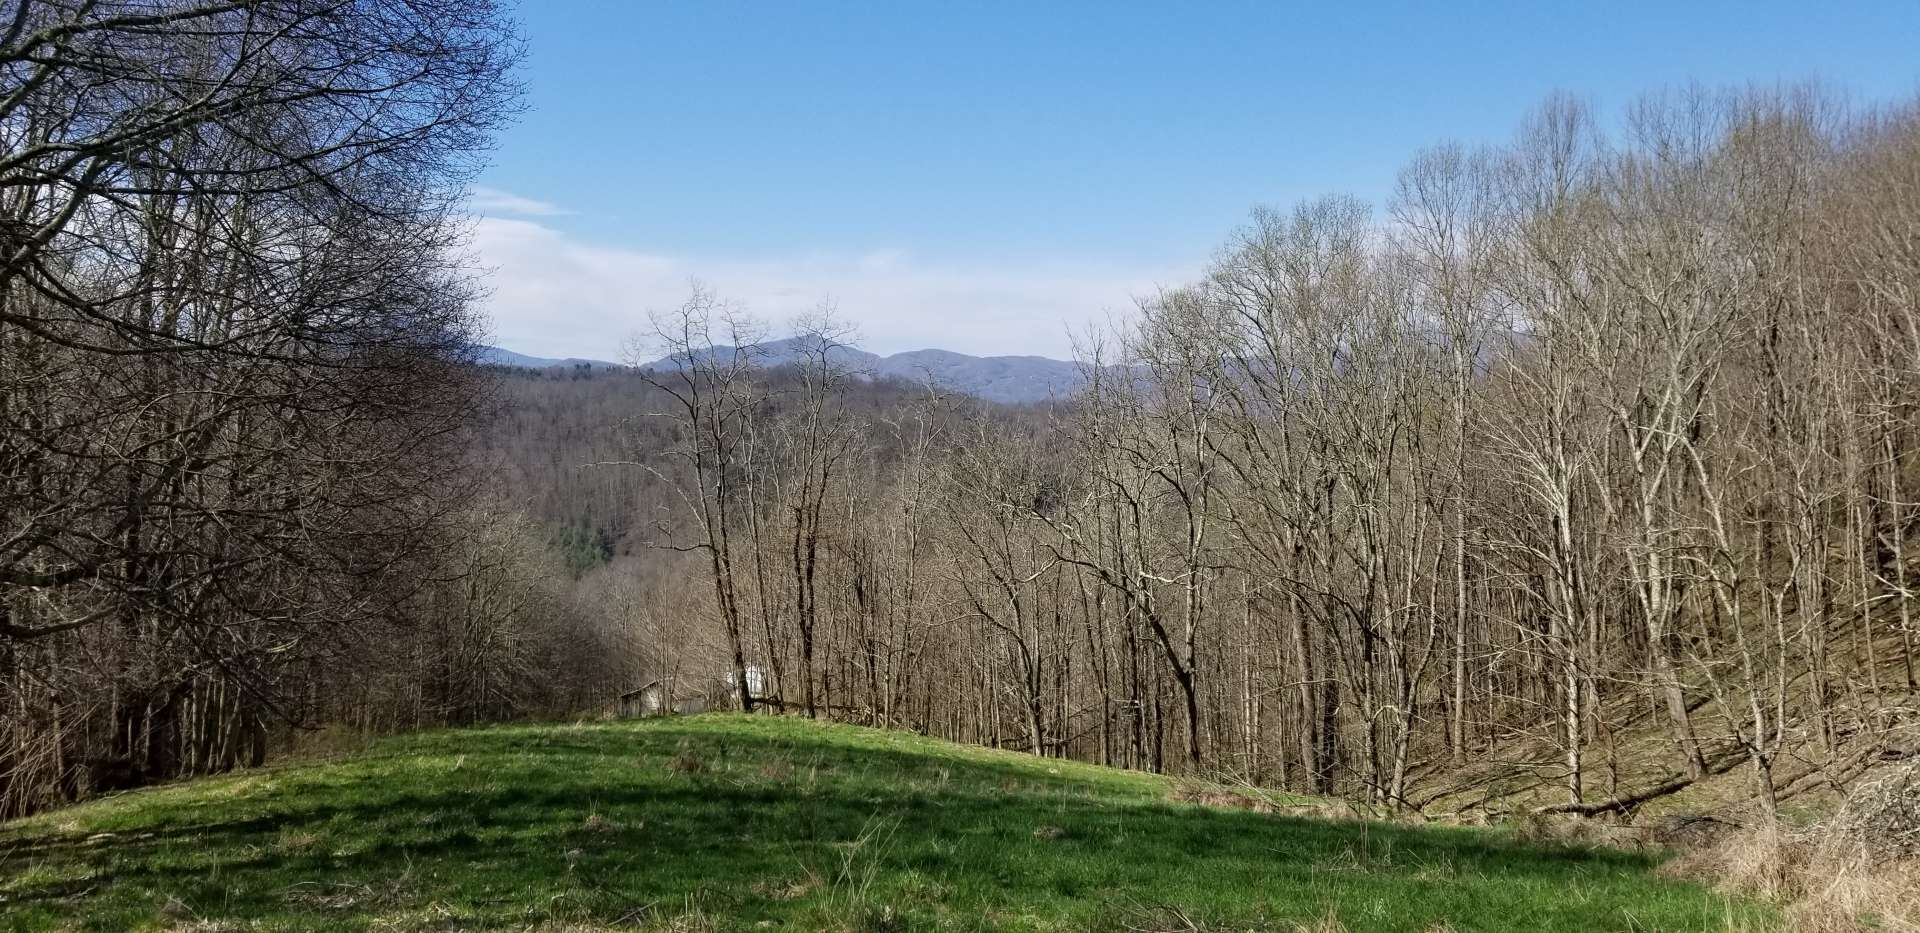 The property offers spectacular Grandfather Mountain views and multiple potential building sites.